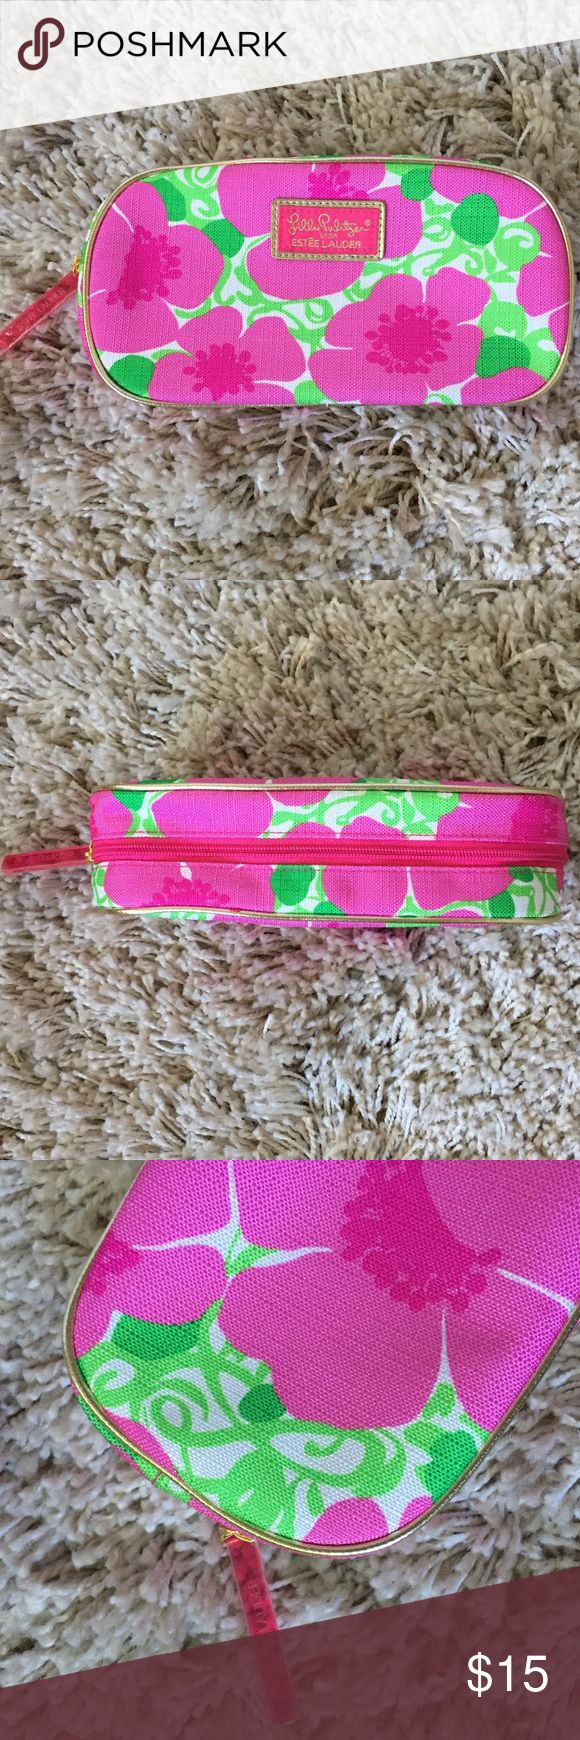 "🆕🌷 Lilly Pulitzer Makeup Bag + Lilly Pulitzer for Estée Lauder makeup/accessories bag 👛💄 + Never been used!  + Measures: 9"" x 4.75""  ⭐️All items are steamed cleaned and shipped within 48 hours of your purchase.   ⭐️If you would like any additional photos or have any questions please let me know.  ⭐️Sorry, no trades. But will listen to ALL fair offers. Thanks for shopping! Lilly Pulitzer Bags Cosmetic Bags & Cases"